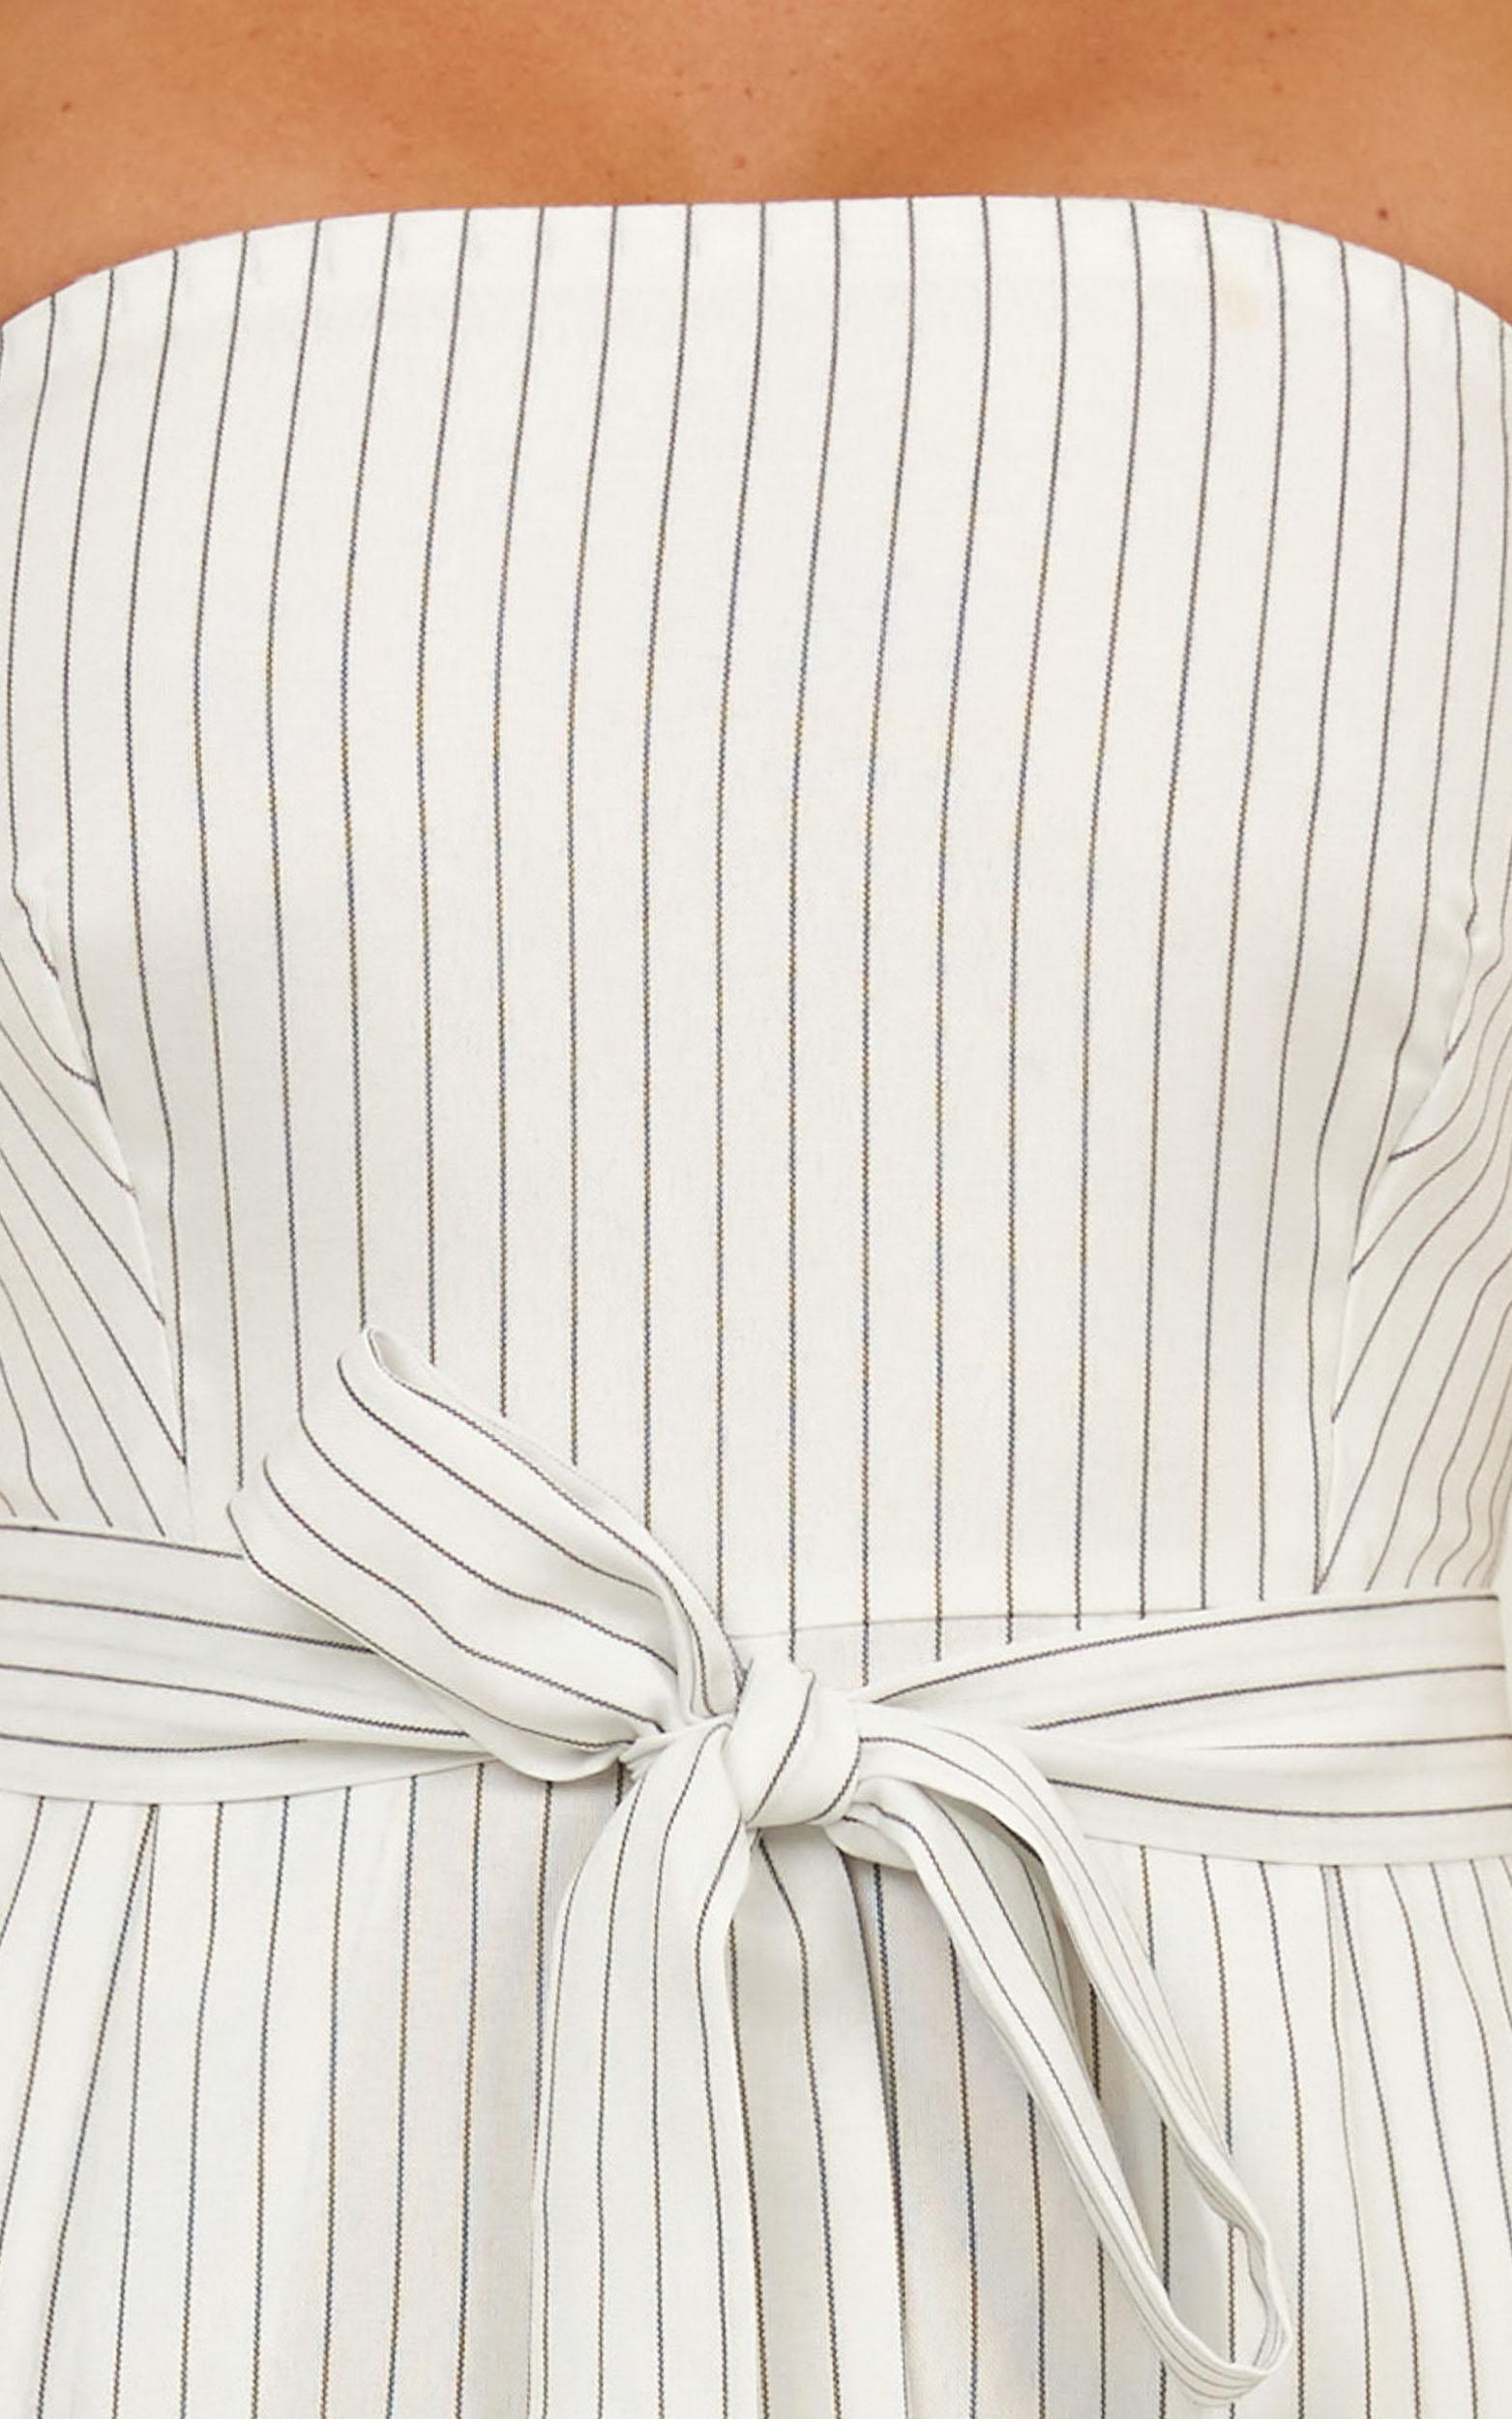 Lover Of Summer Day jumpsuit In white stripe - 14 (XL), White, hi-res image number null